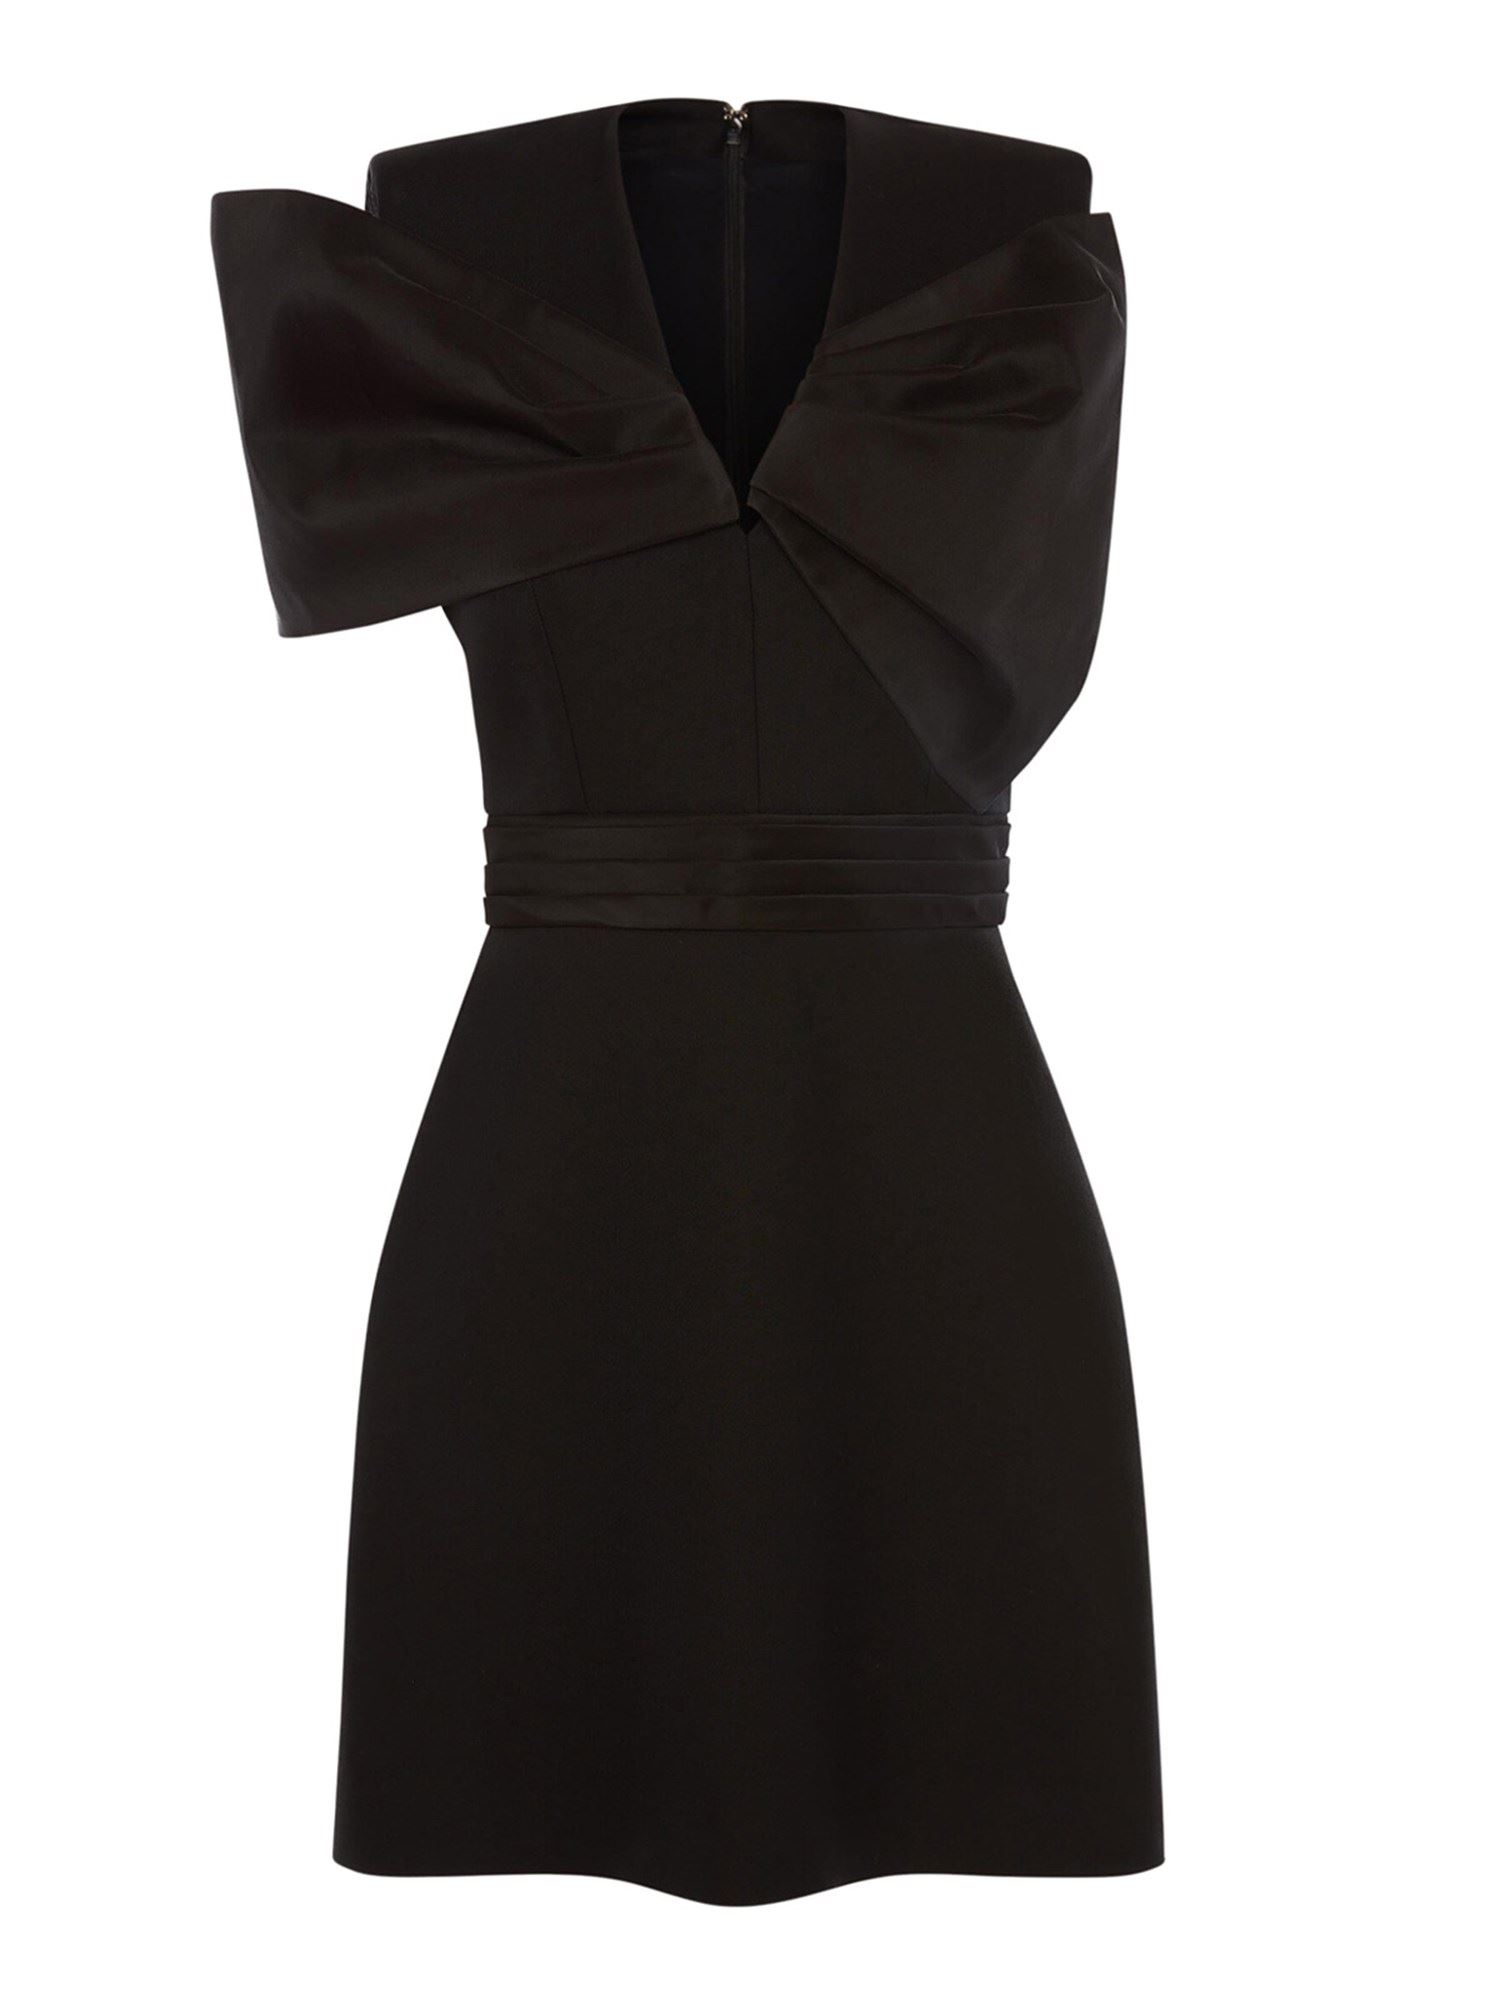 Alexander Mcqueen ALEXANDER MCQUEEN BOW WOOL-VISCOSE BLEND DRESS IN BLACK